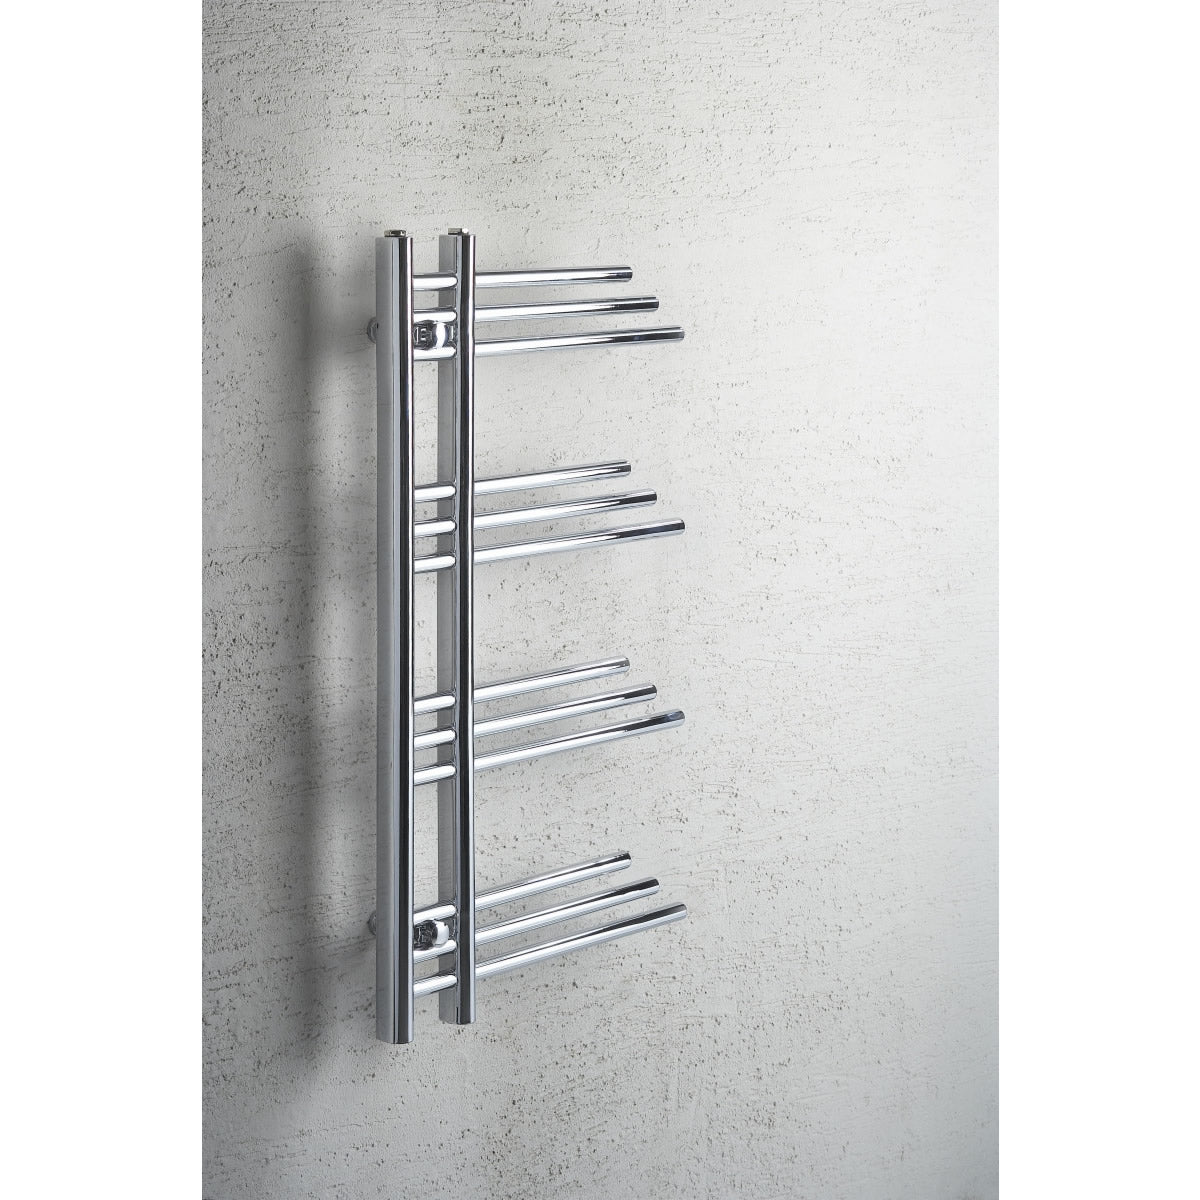 500mm Wide 900mm High Difta Designer Chrome Heated Towel Rail Radiator HTR,Towel Rail Only